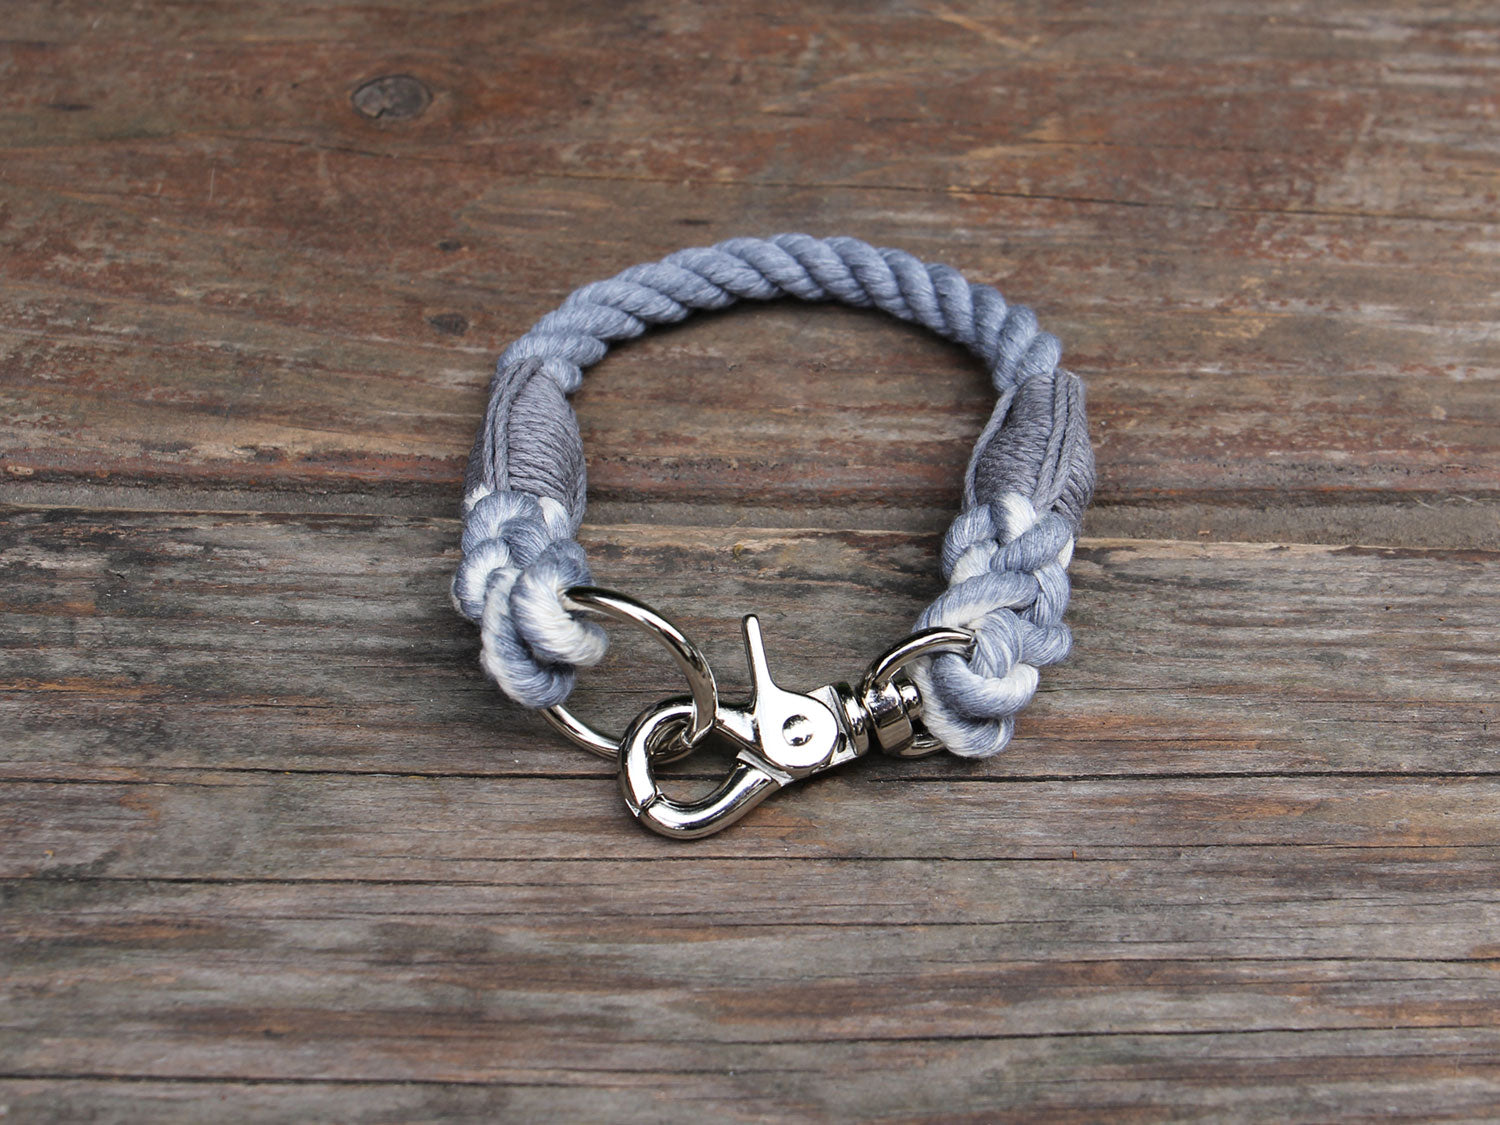 Seaside Blue Organic Cotton Rope Dog Collar - For Extra Small and Toy Dogs